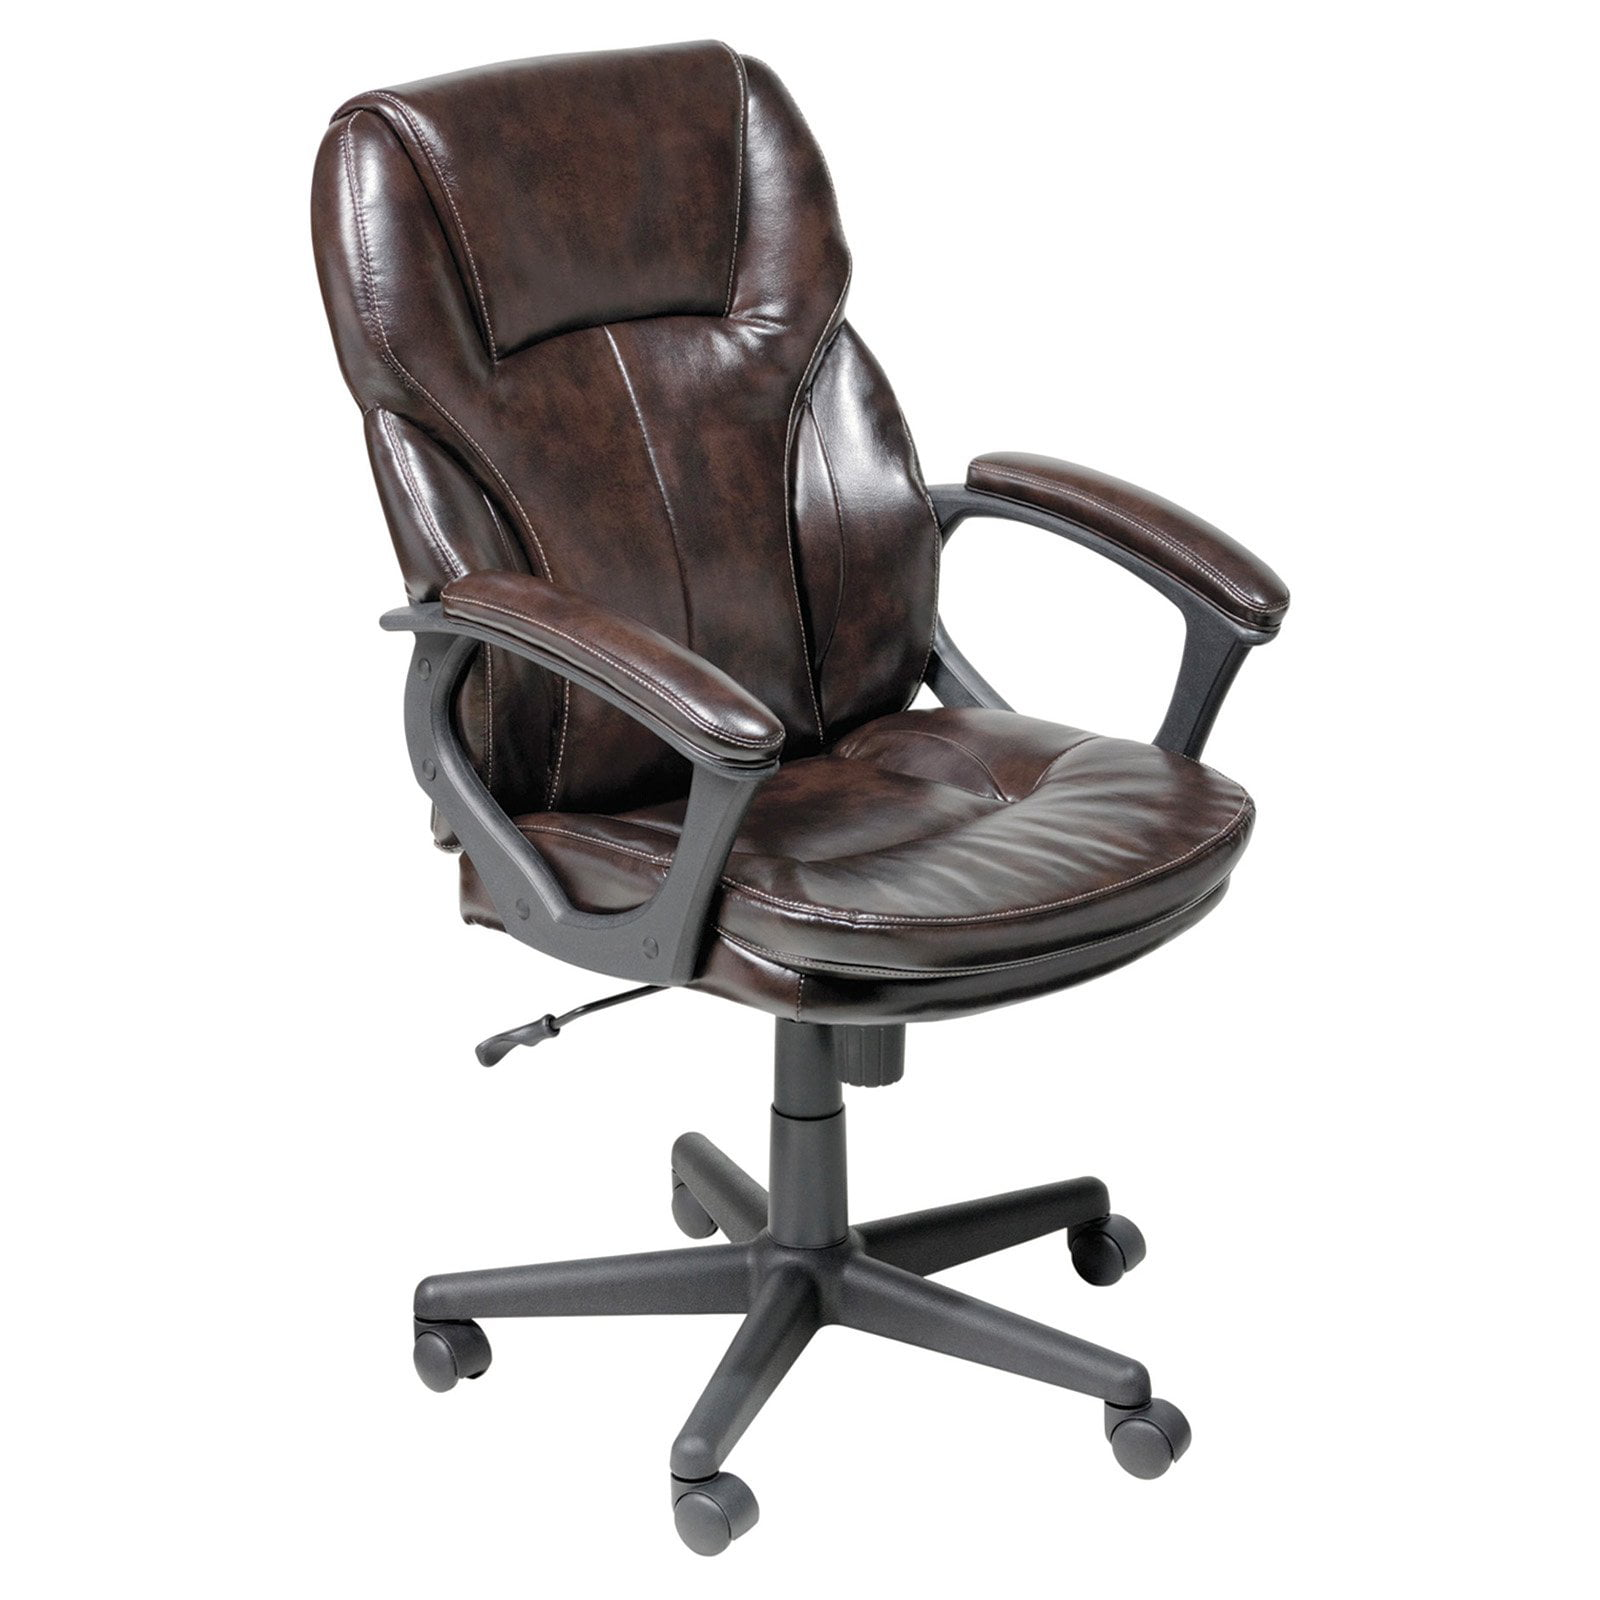 Serta manager puresoft leather executive office chair roasted chestnut walmart com